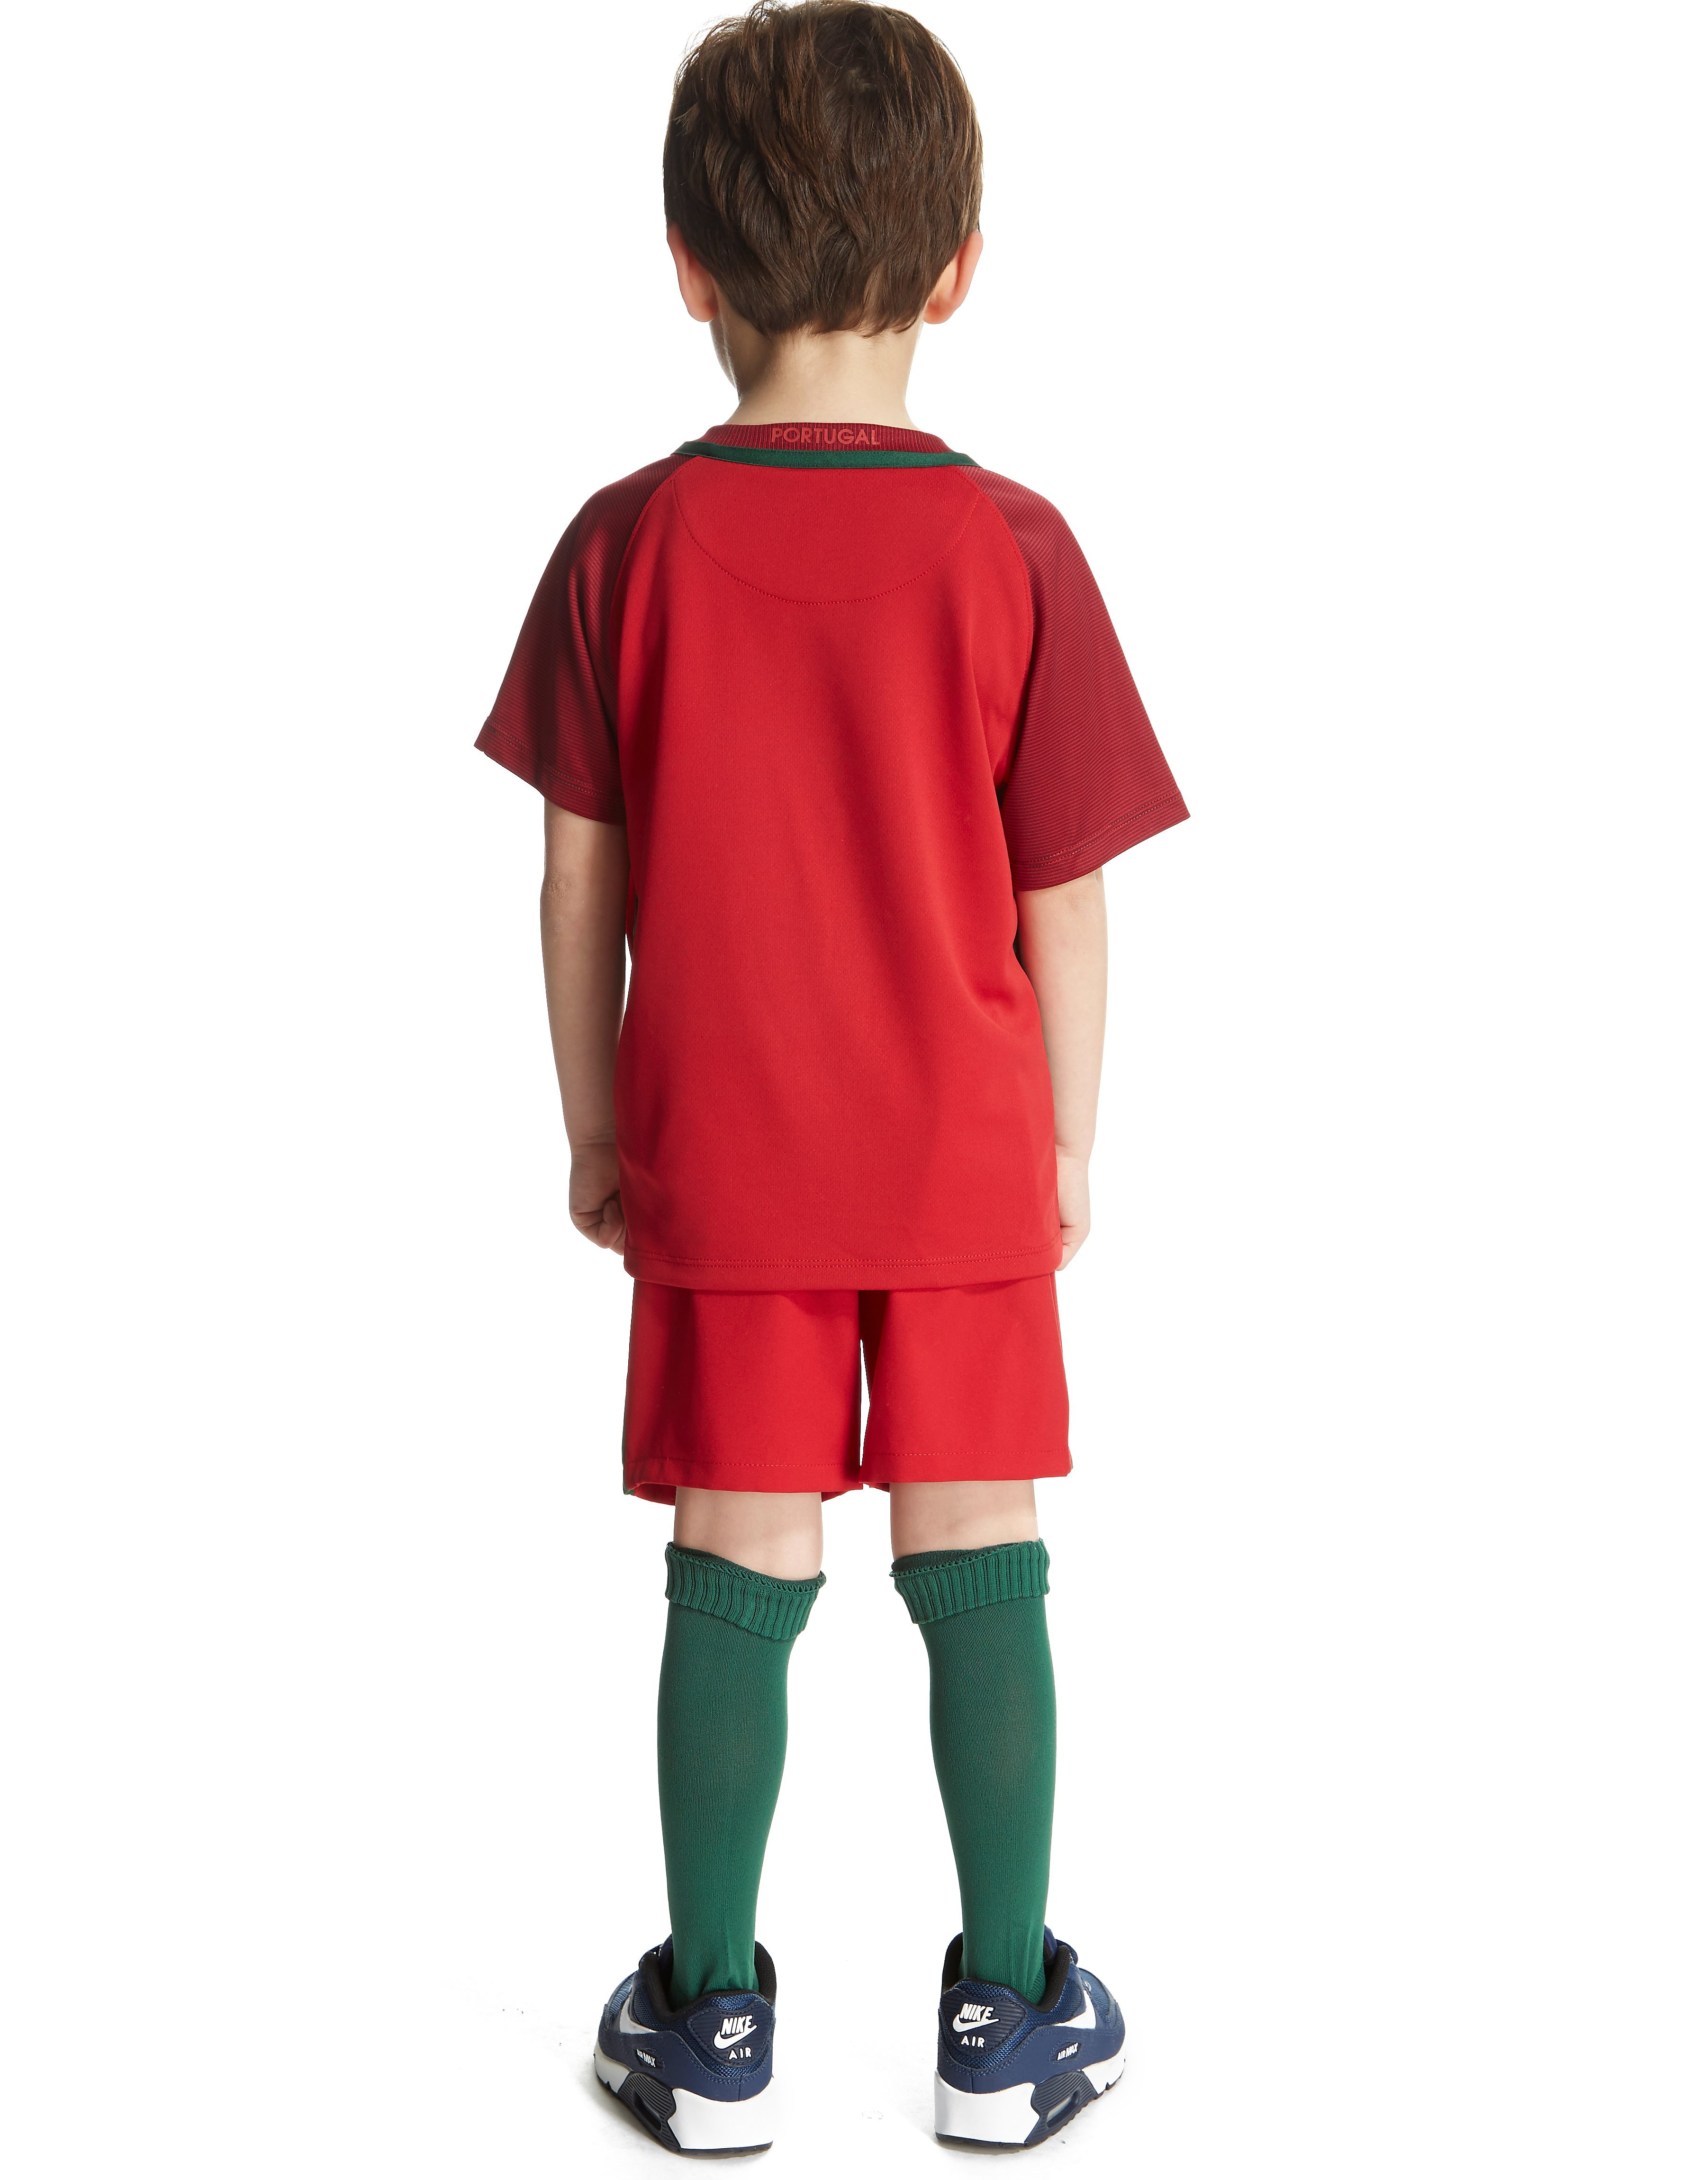 Nike Portugal Home 2016 Kit Children